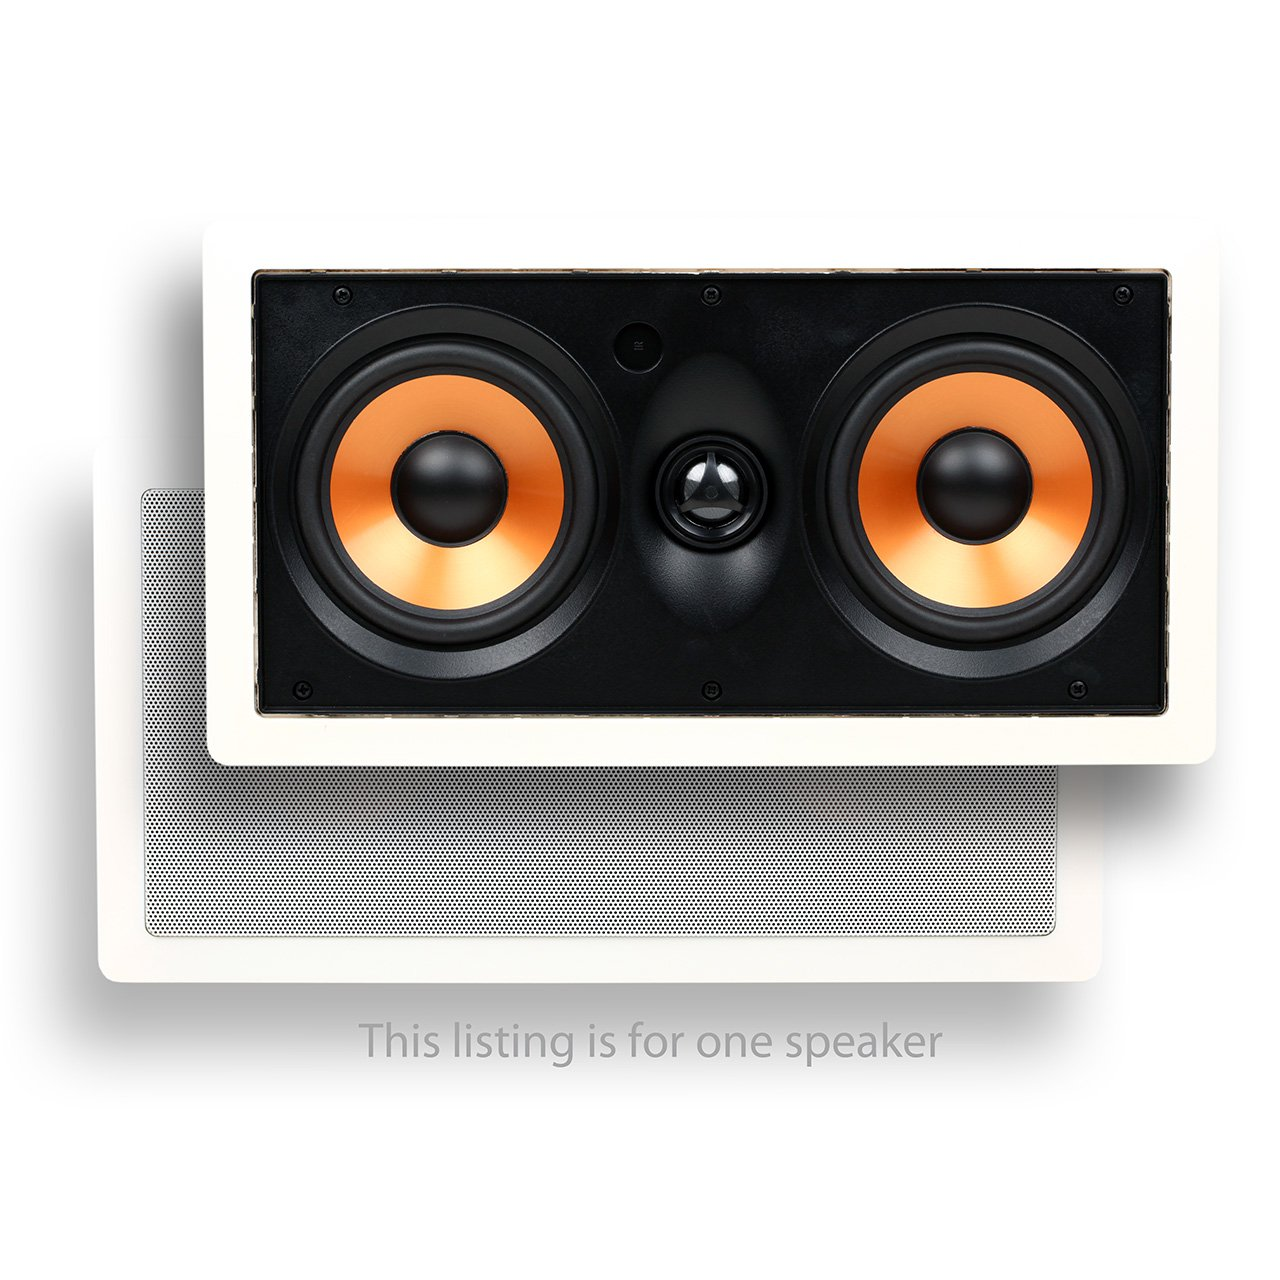 Micca M-CS Center Channel In-Wall Speaker with Dual 5.25 Inch Woofers and Pivoting 1'' Silk Dome Tweeter (Each, White)